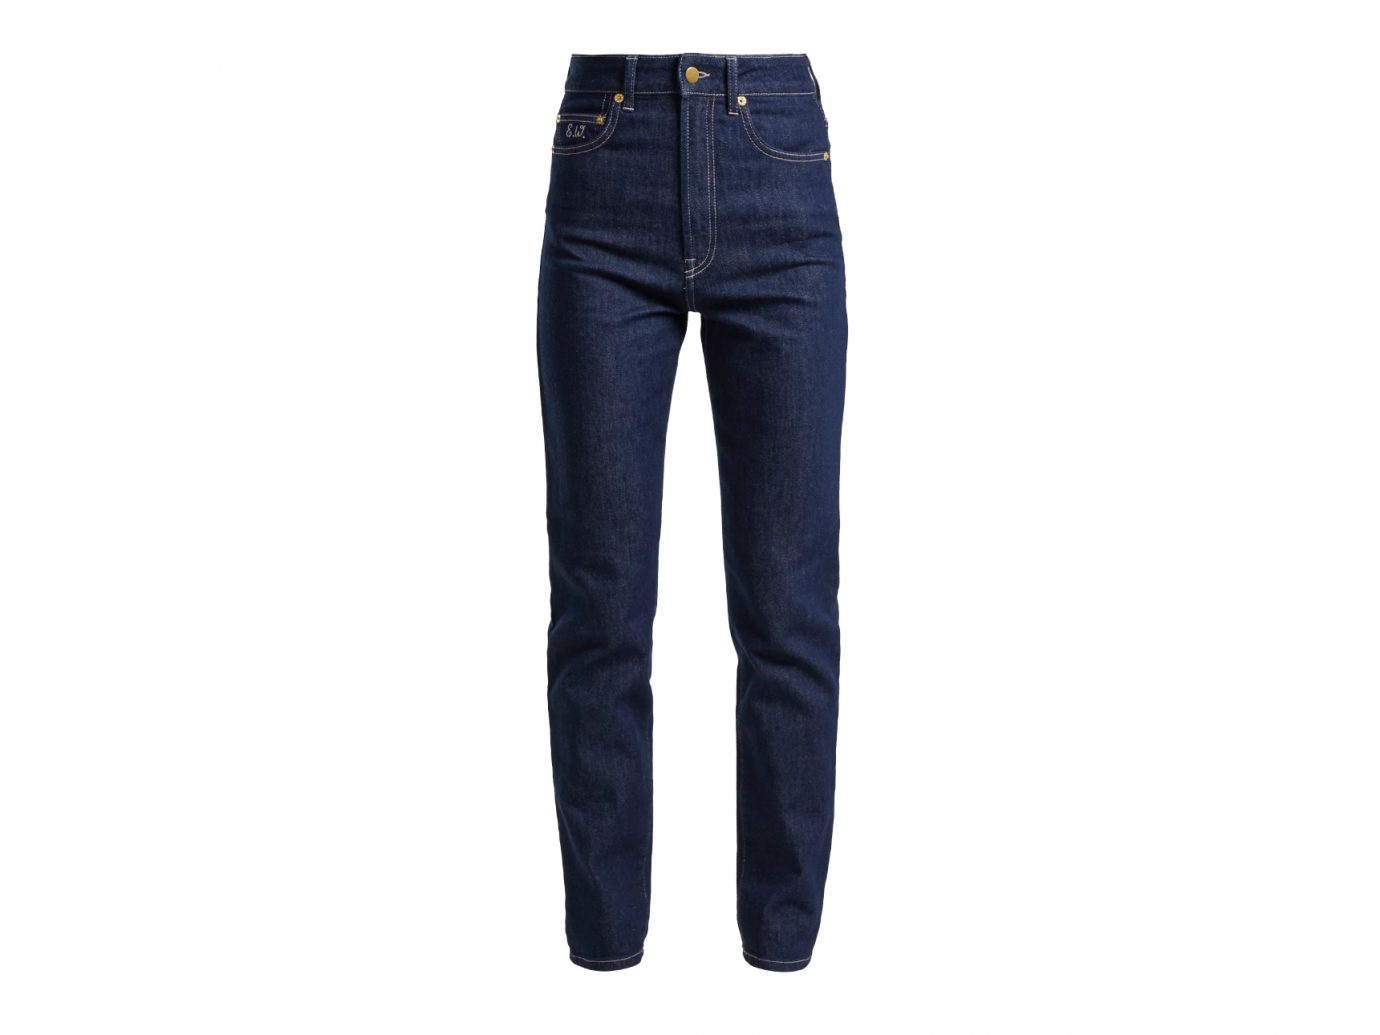 EMILIA WICKSTEAD No. Twenty Eight high-rise jeans